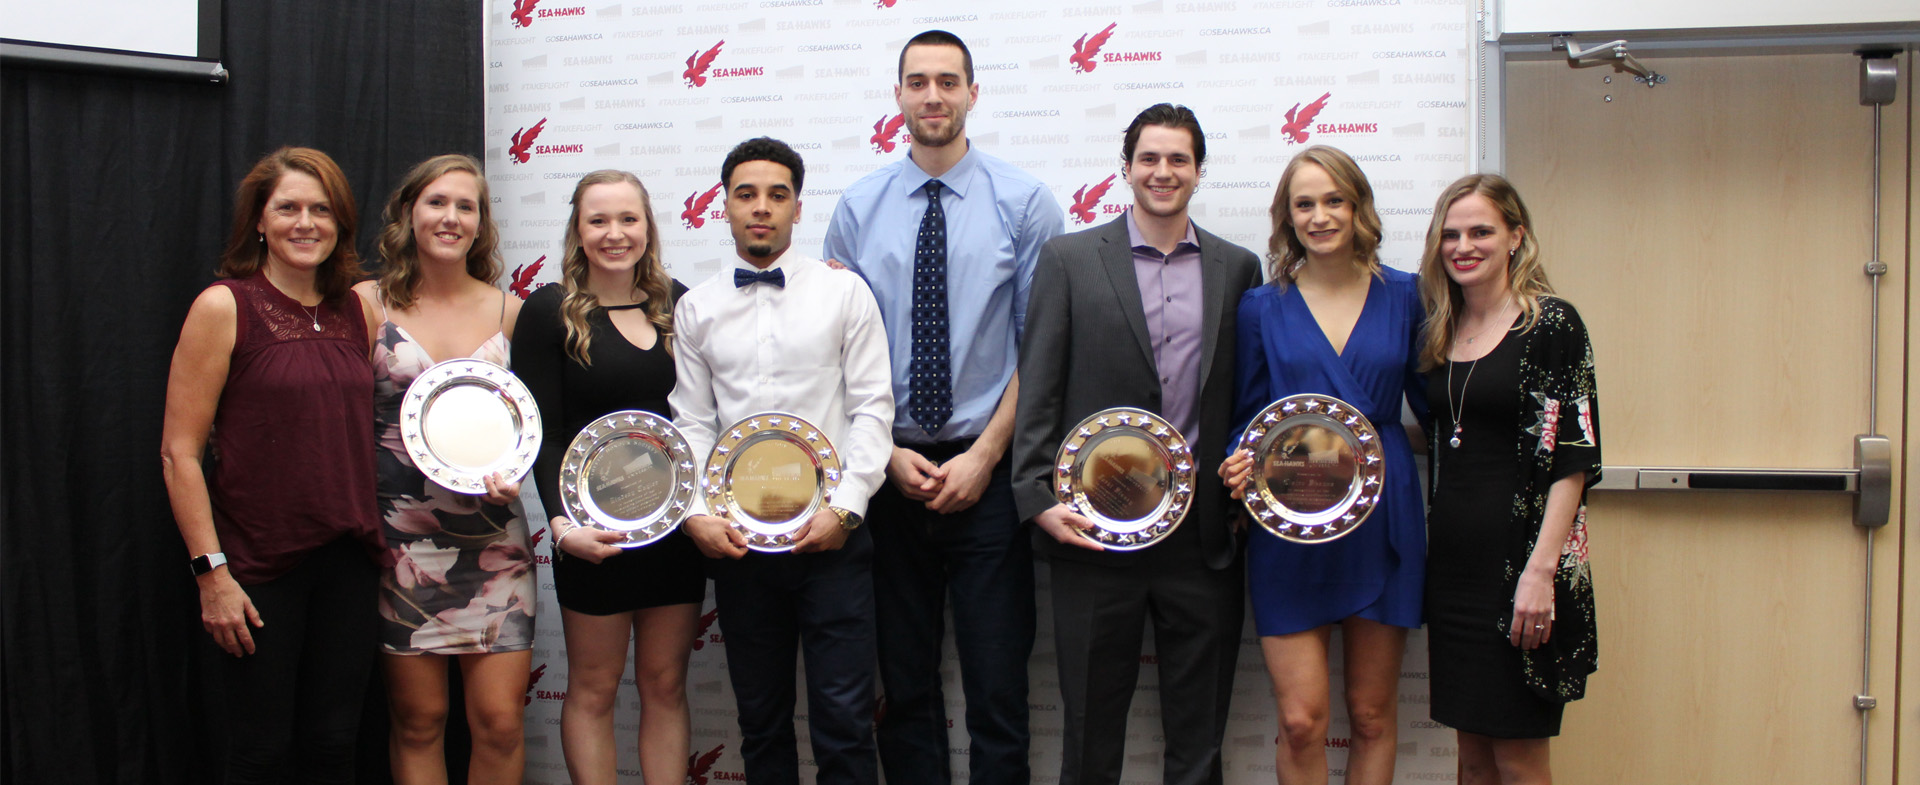 Student-Athletes Honoured at Awards Night